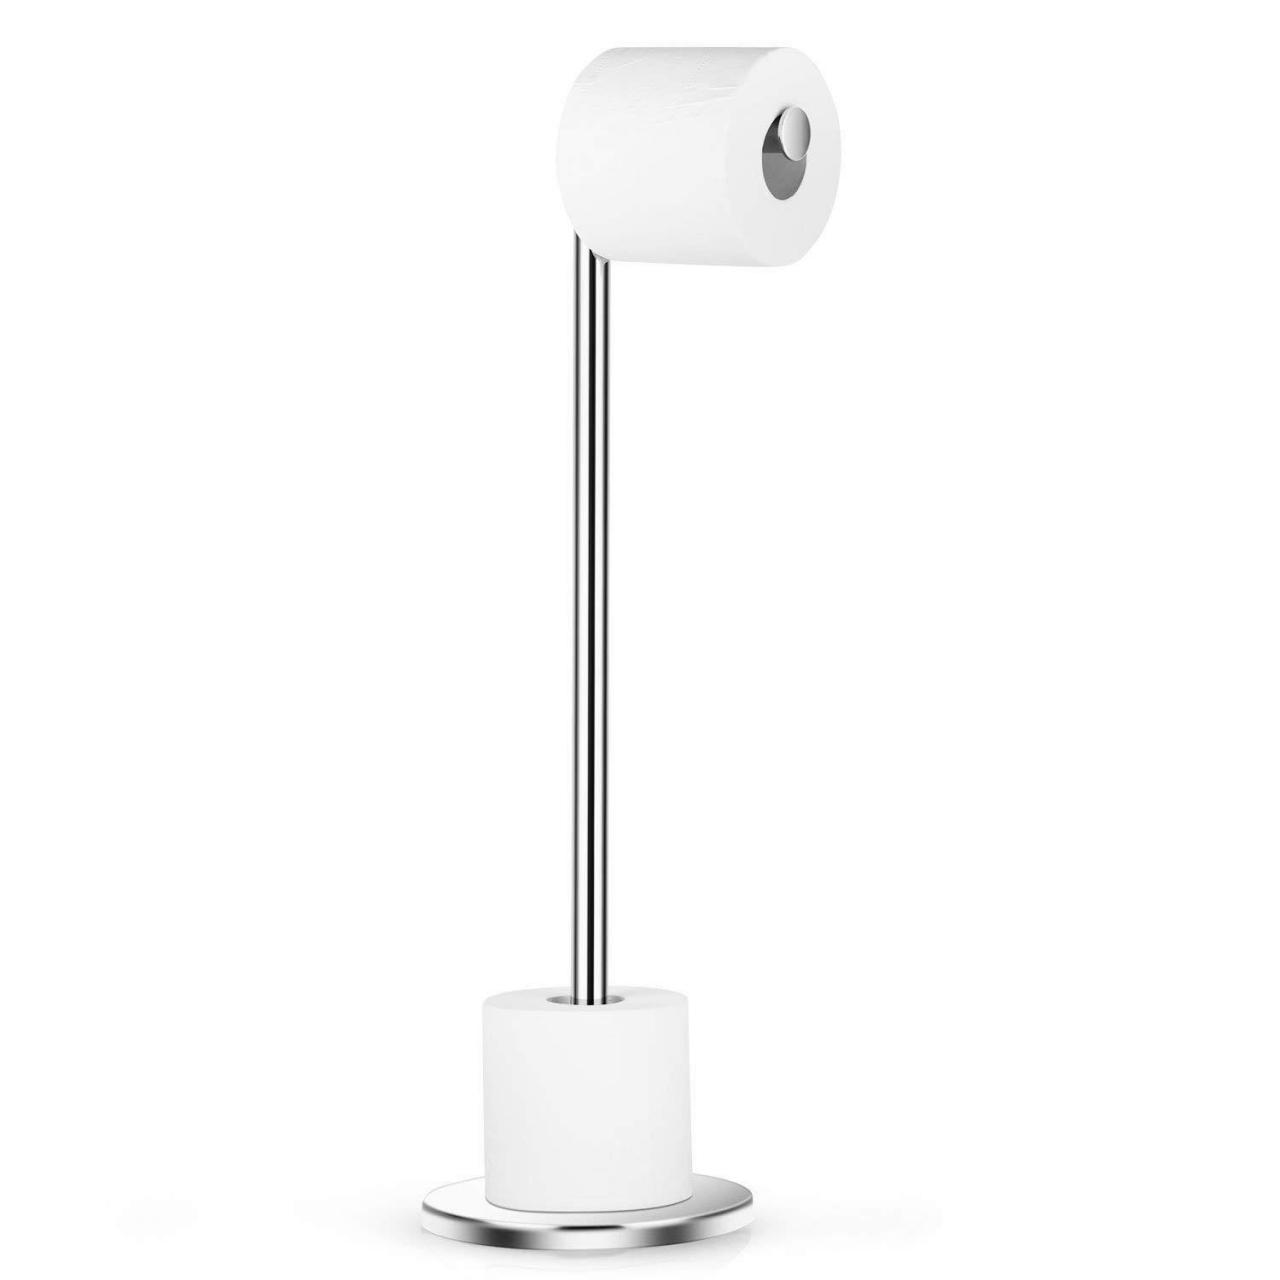 Quality Dailyart Stainless Steel Toilet Paper Holder Free Standing with Reserve Tissu06 wholesale